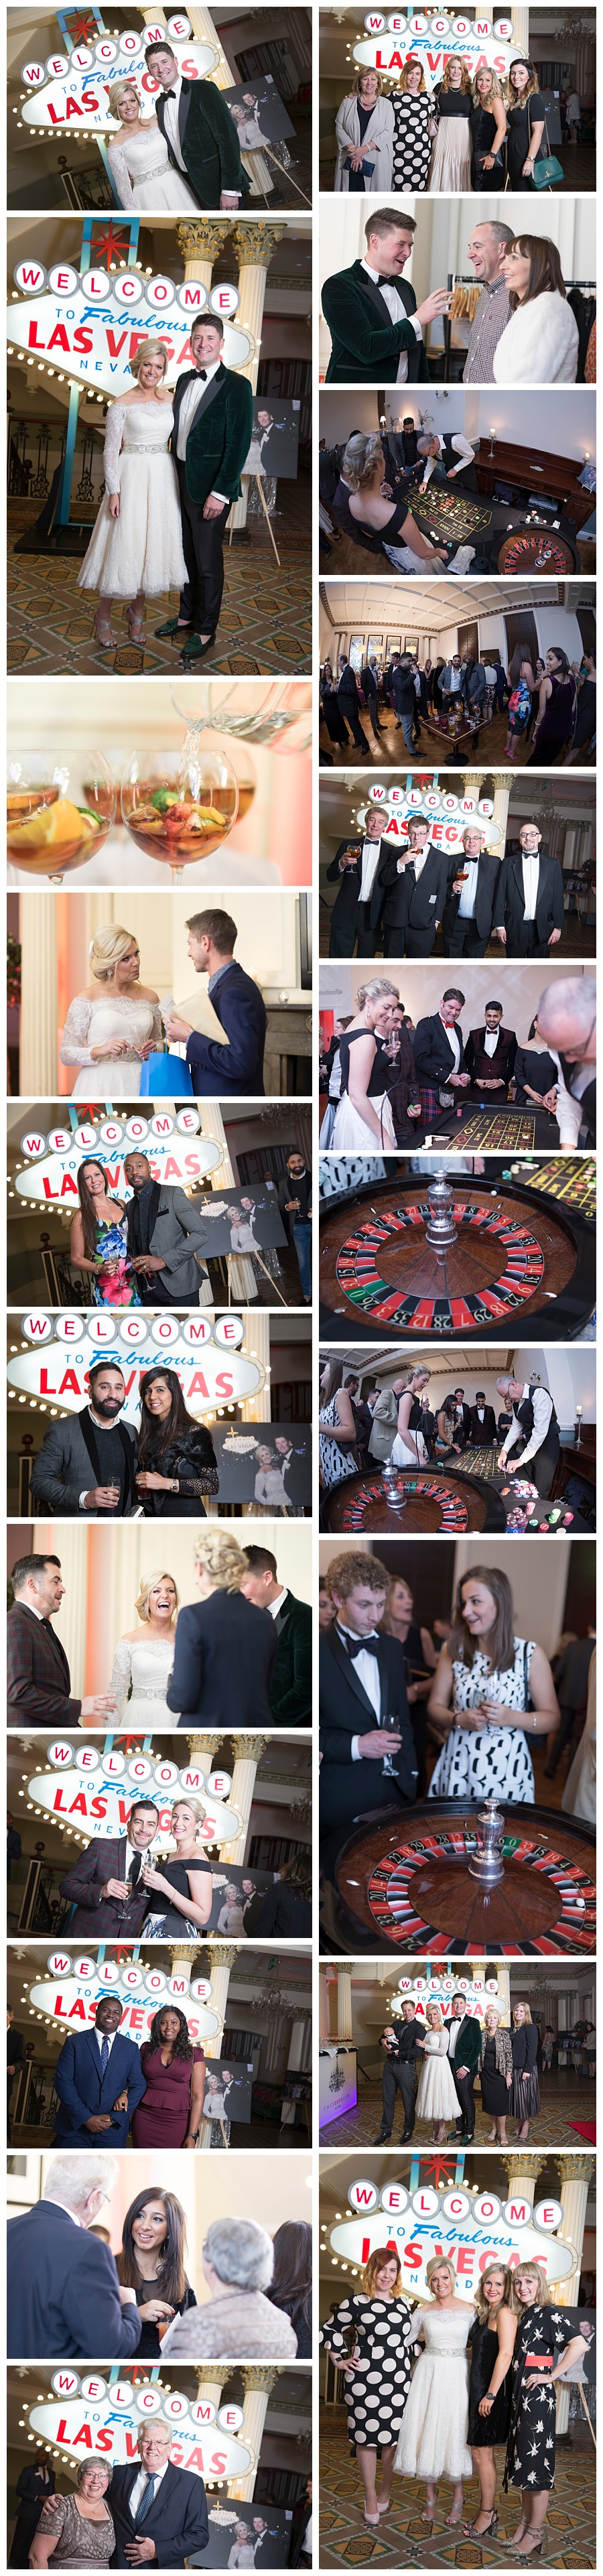 Photographer Leeds Weddings, wedding reception at Leeds Club, giant Las Vegas sign hire